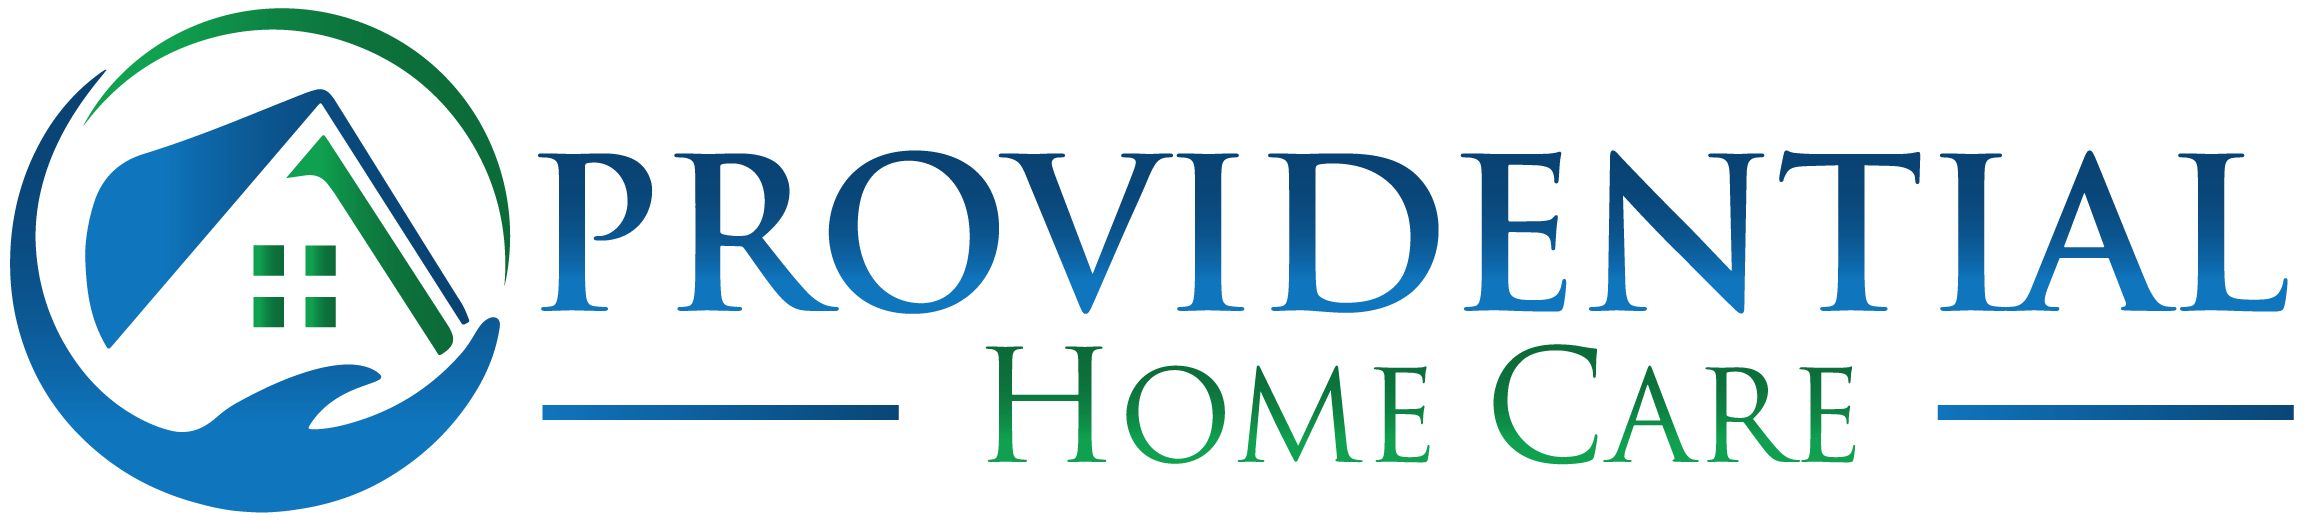 Providential Home Care